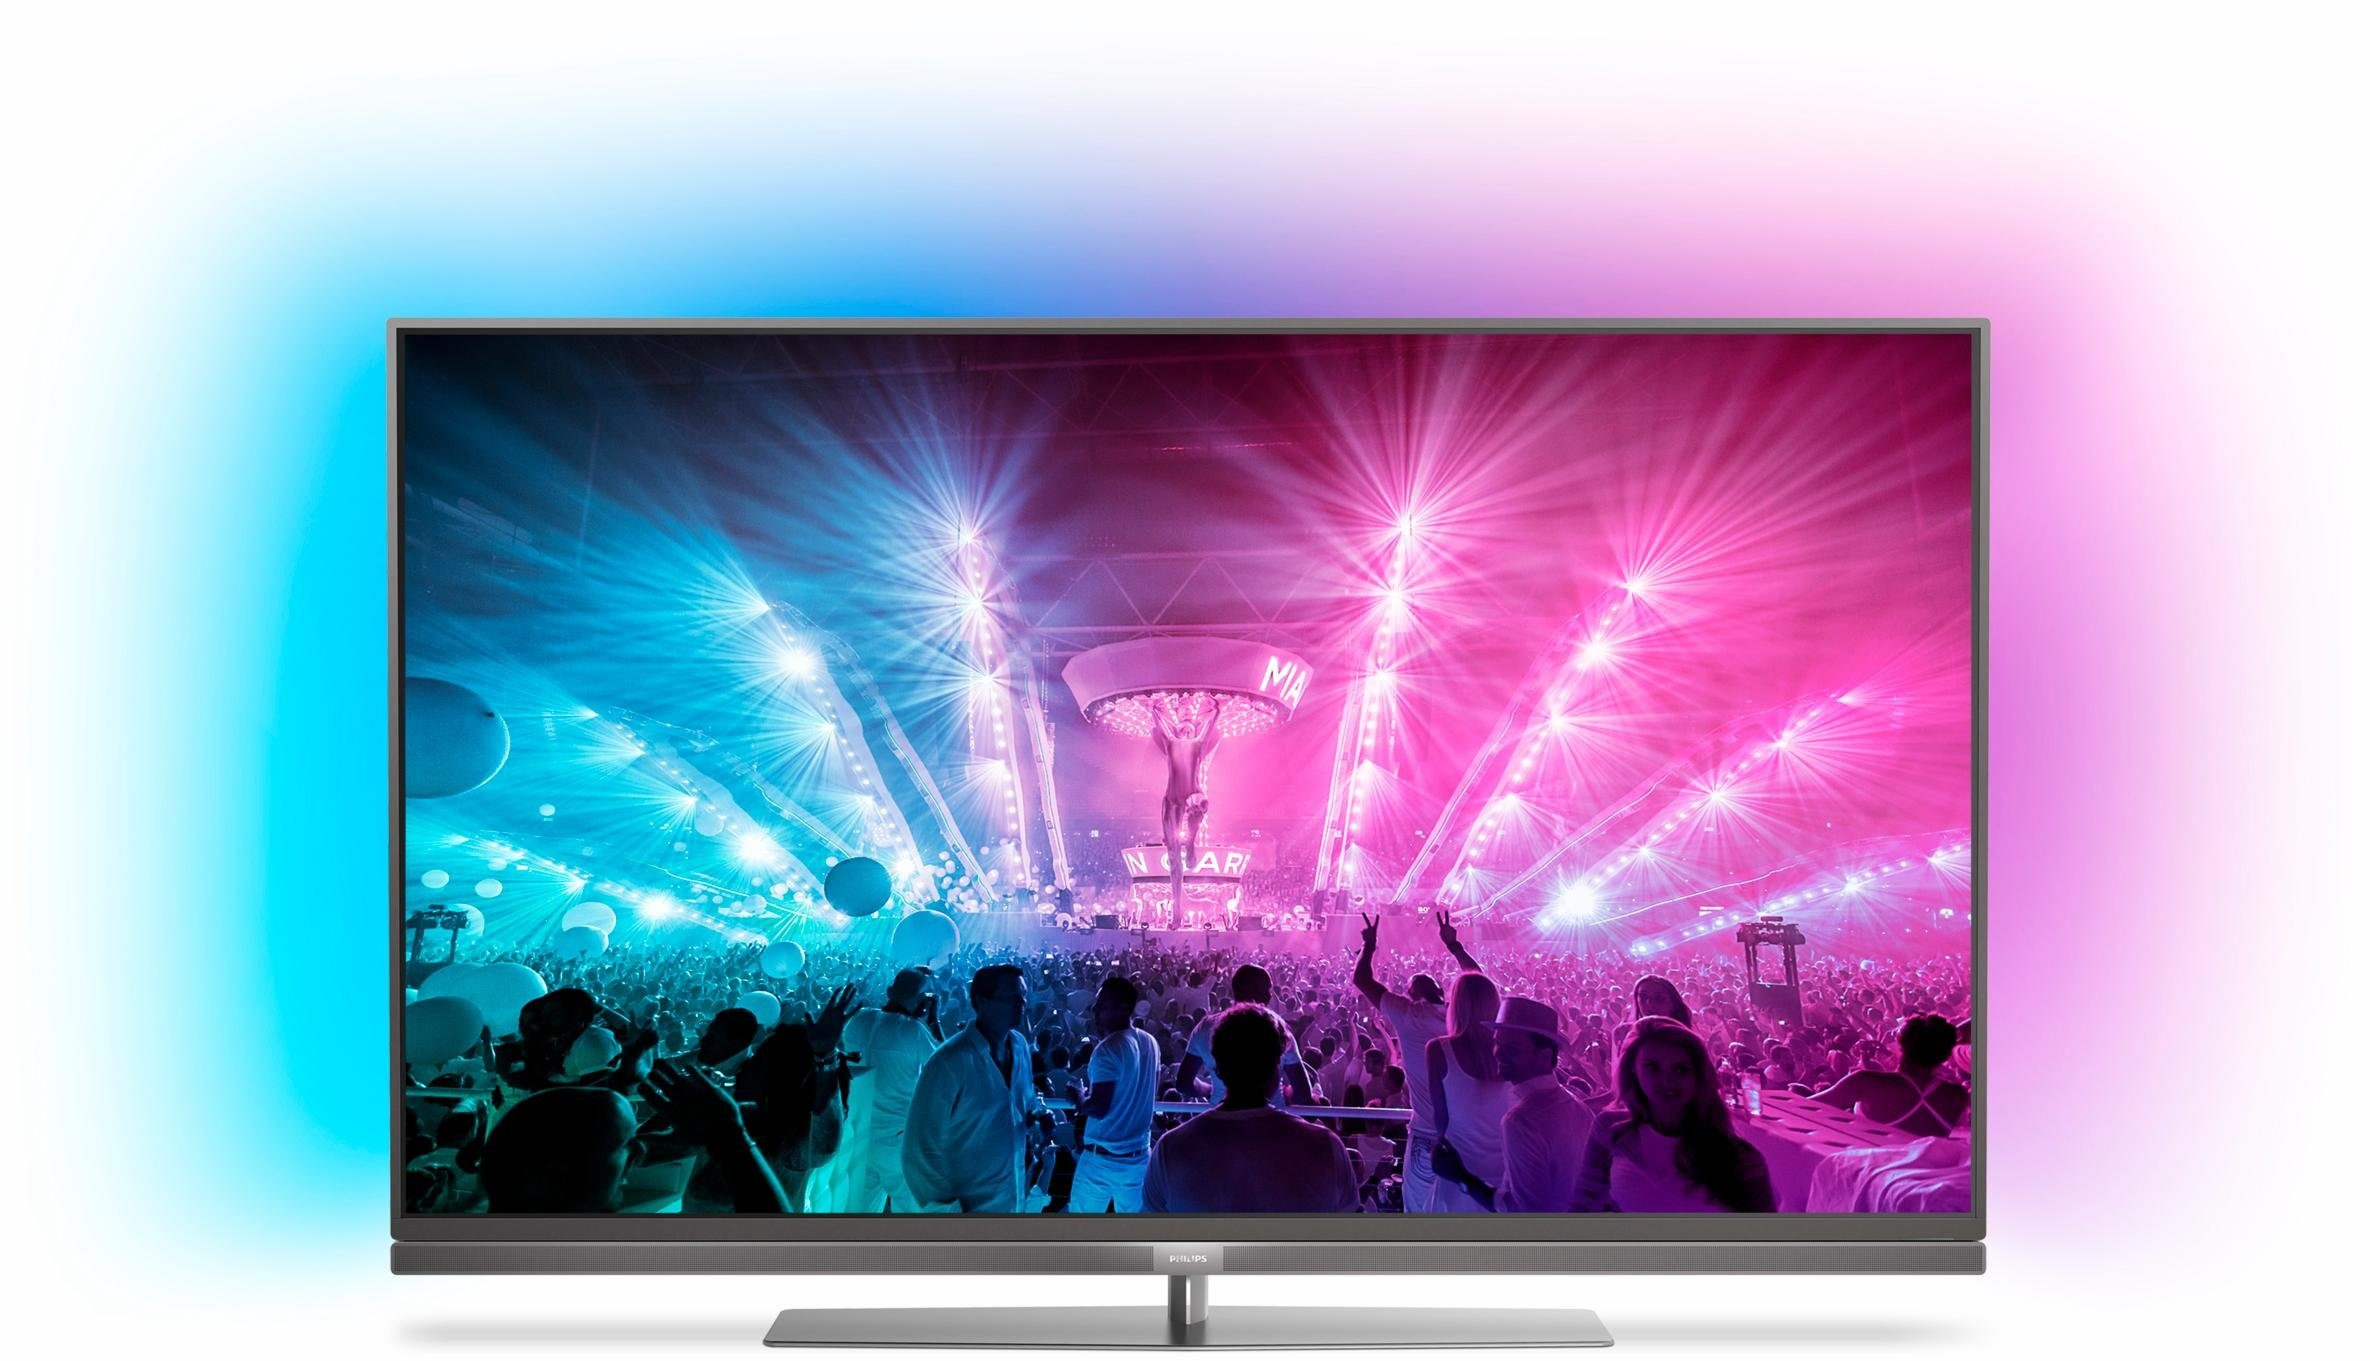 Philips 55PUS7181/12, LED Fernseher, 139 cm (55 Zoll), 2160p (4K Ultra HD) Ambilight, Smart-TV